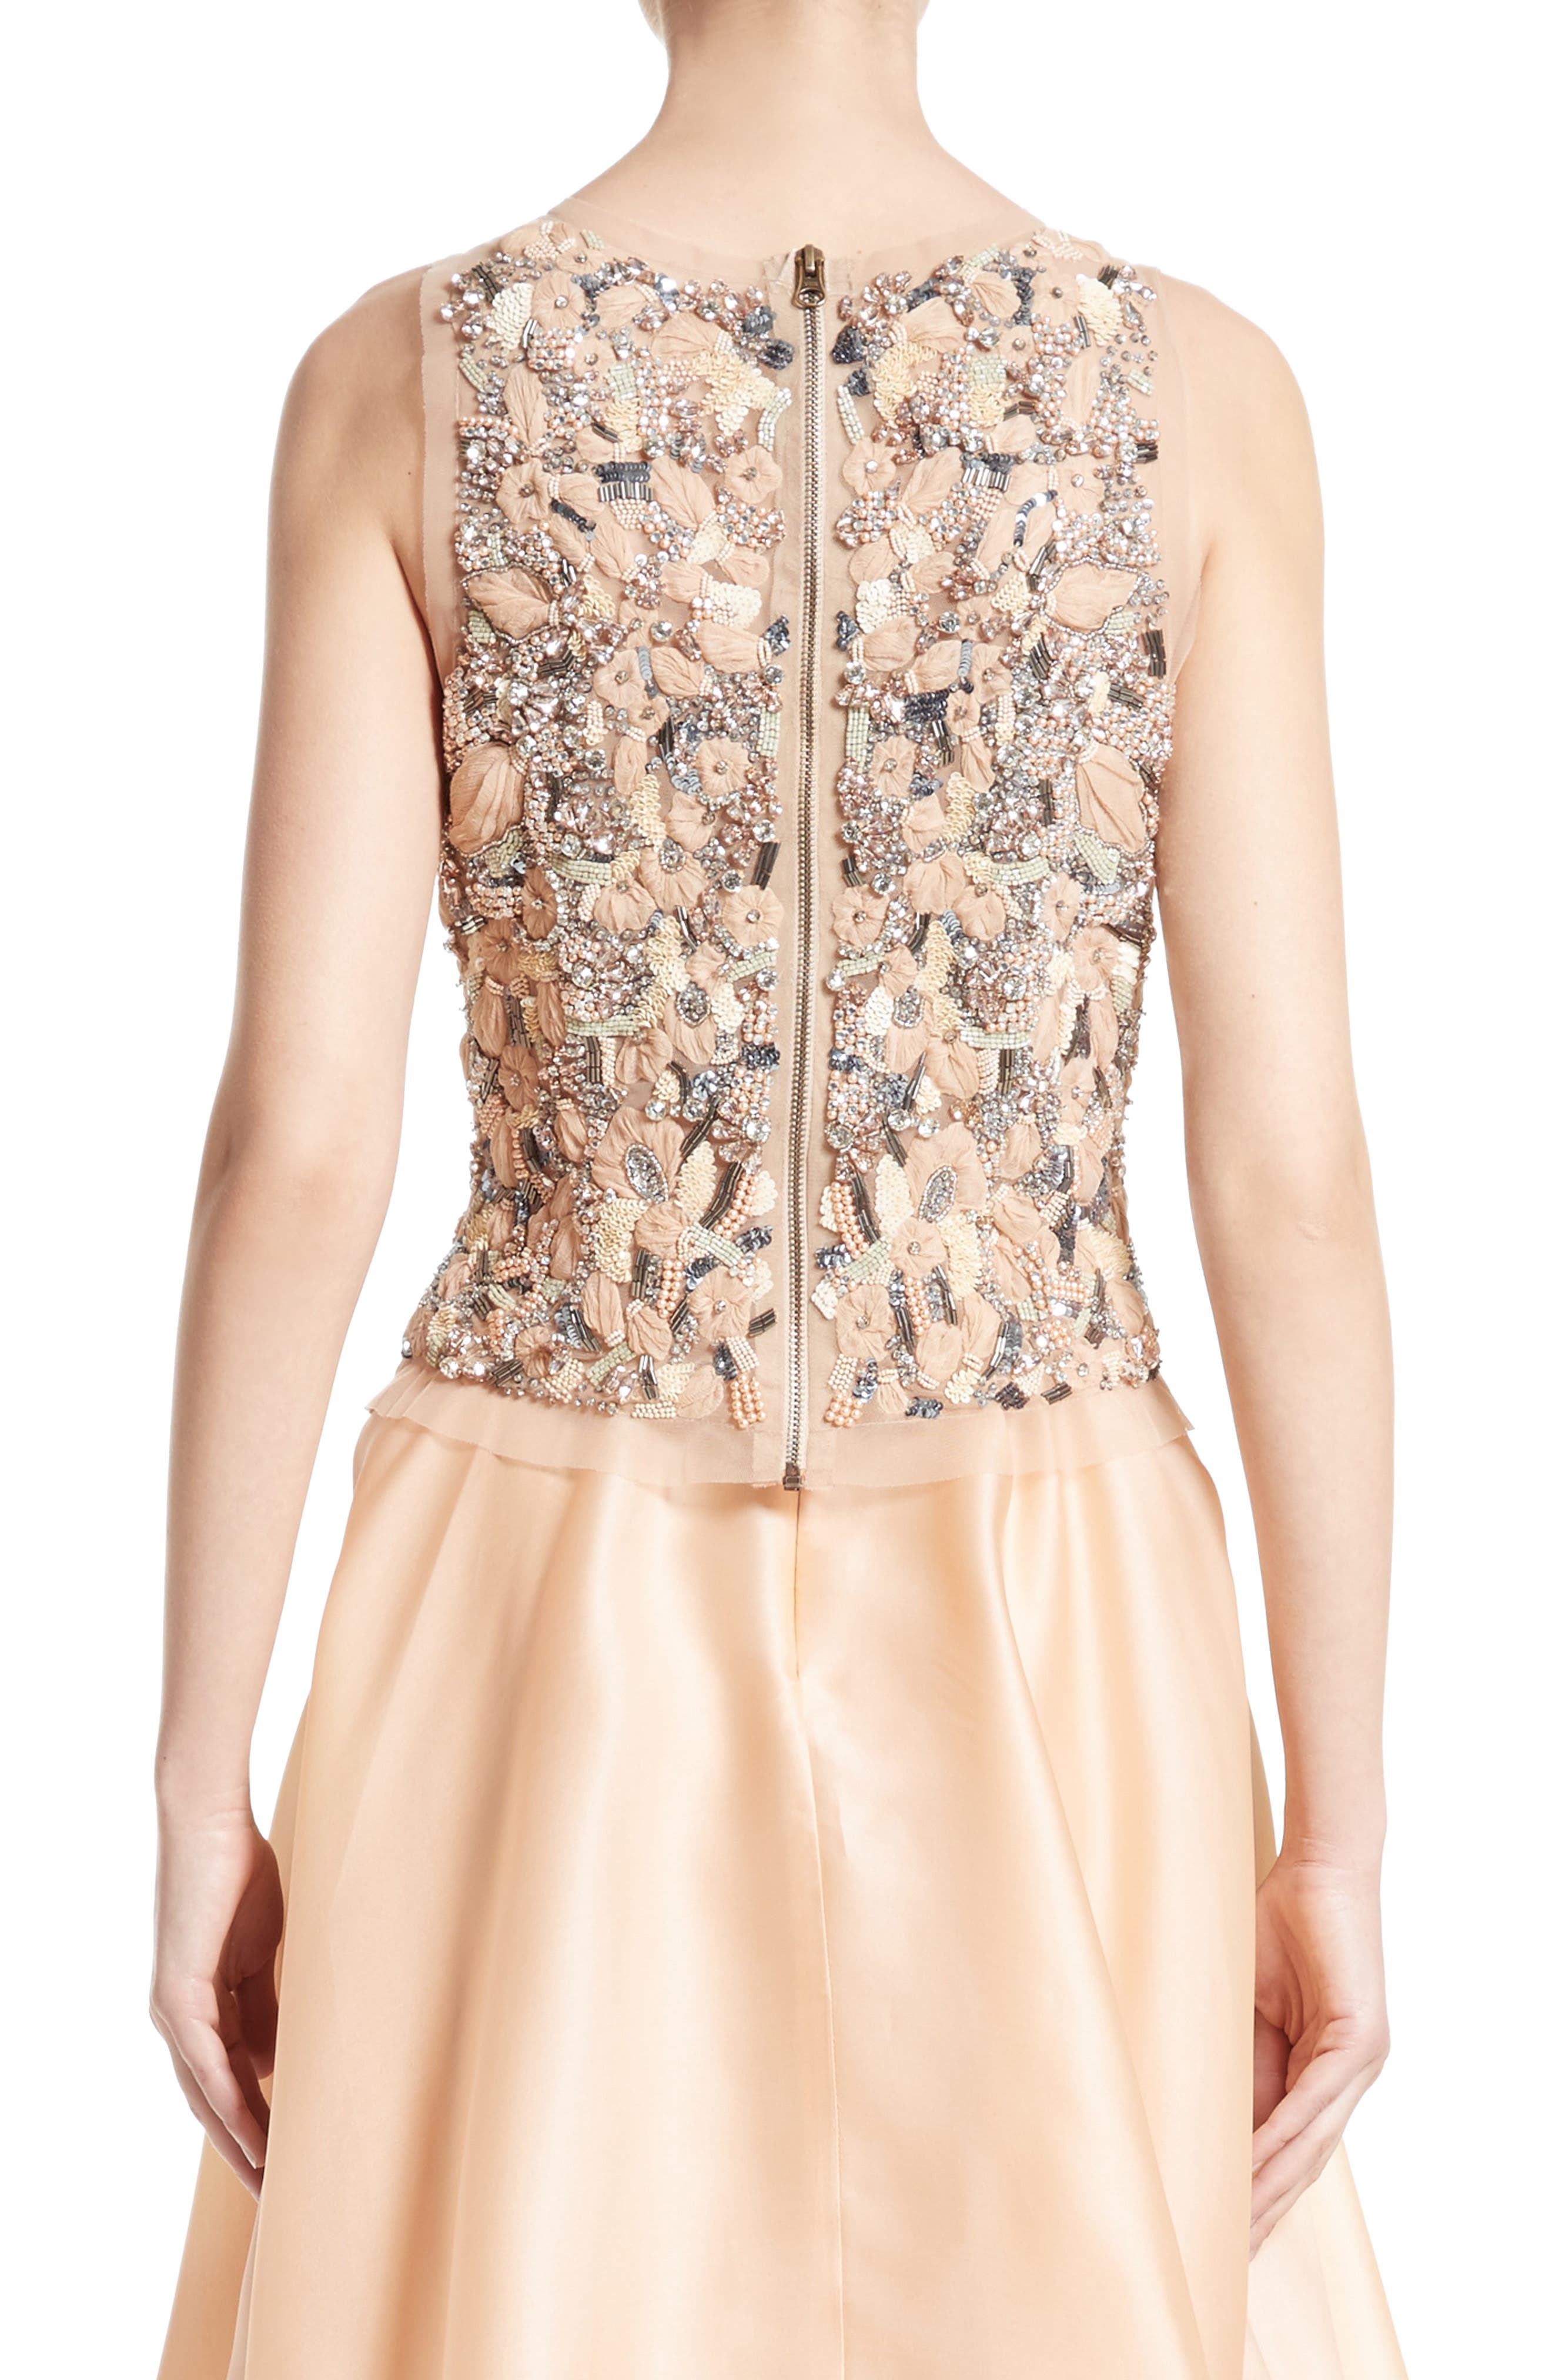 Badgley Mischka Couture Beaded Top,                             Alternate thumbnail 2, color,                             681